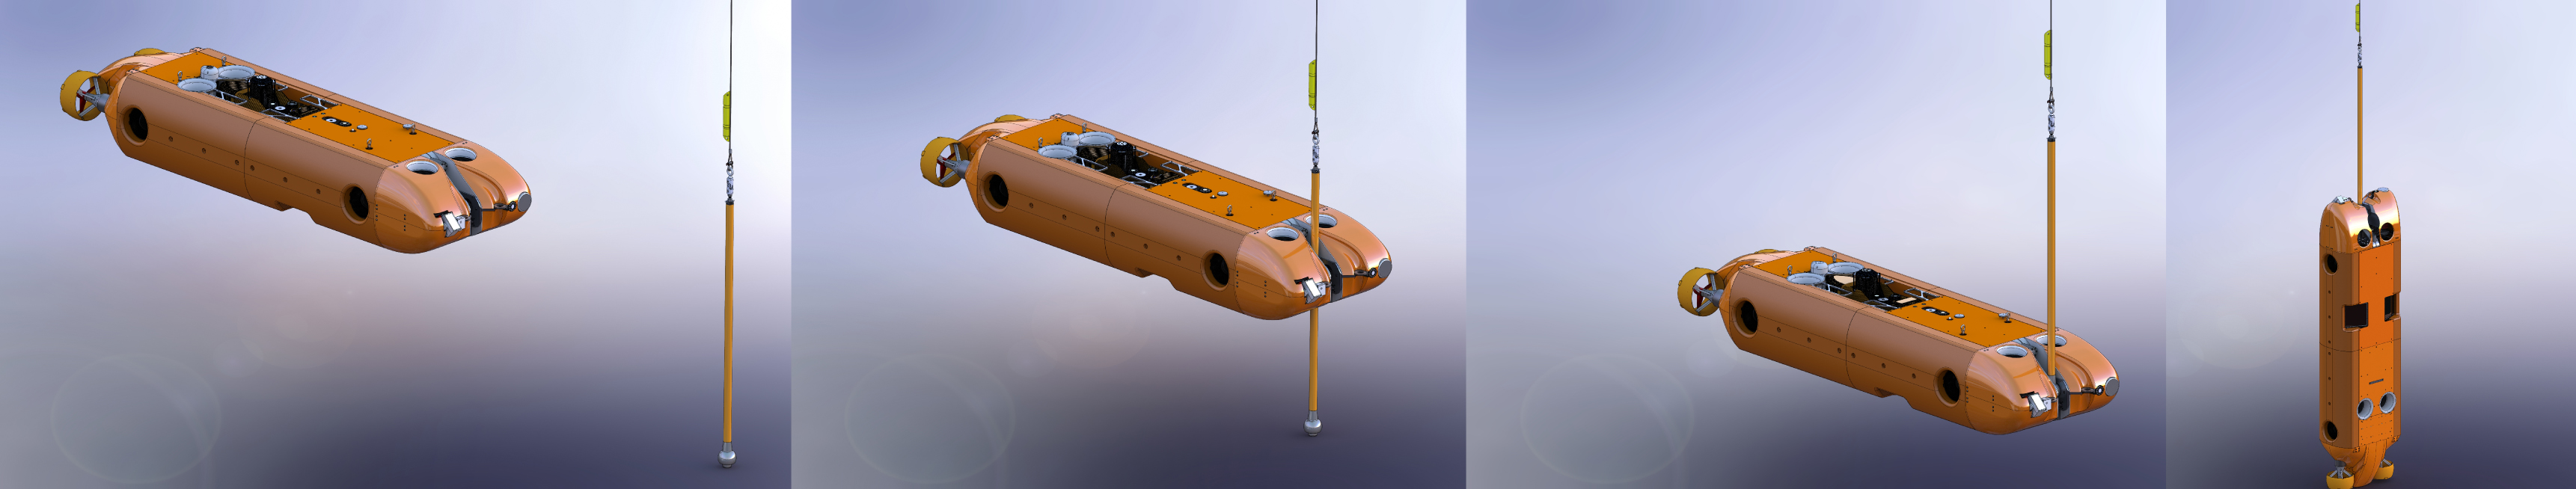 ARTEMIS hover-capable AUV docking sequence